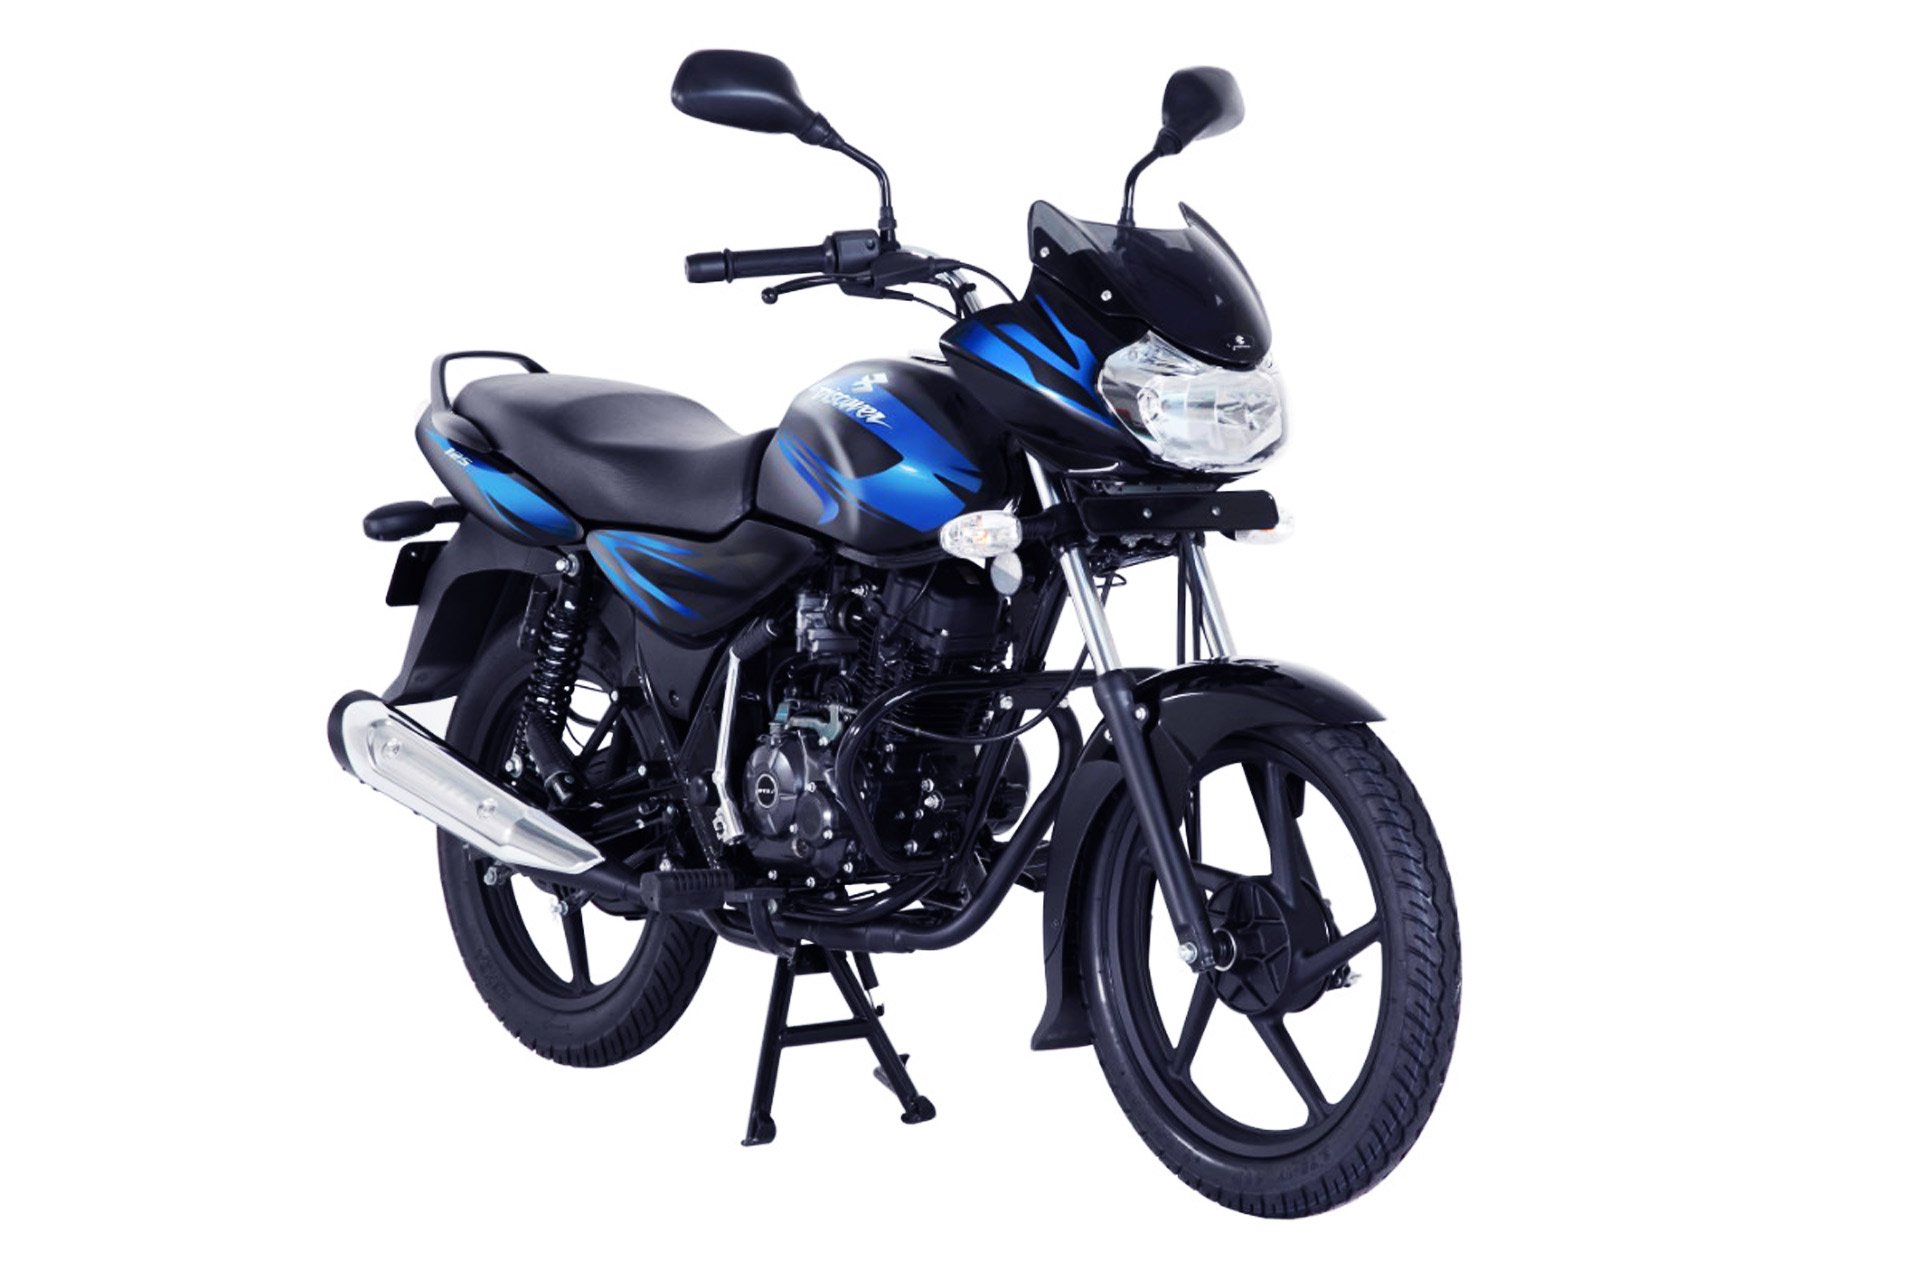 Bajaj Discover 125 Specification